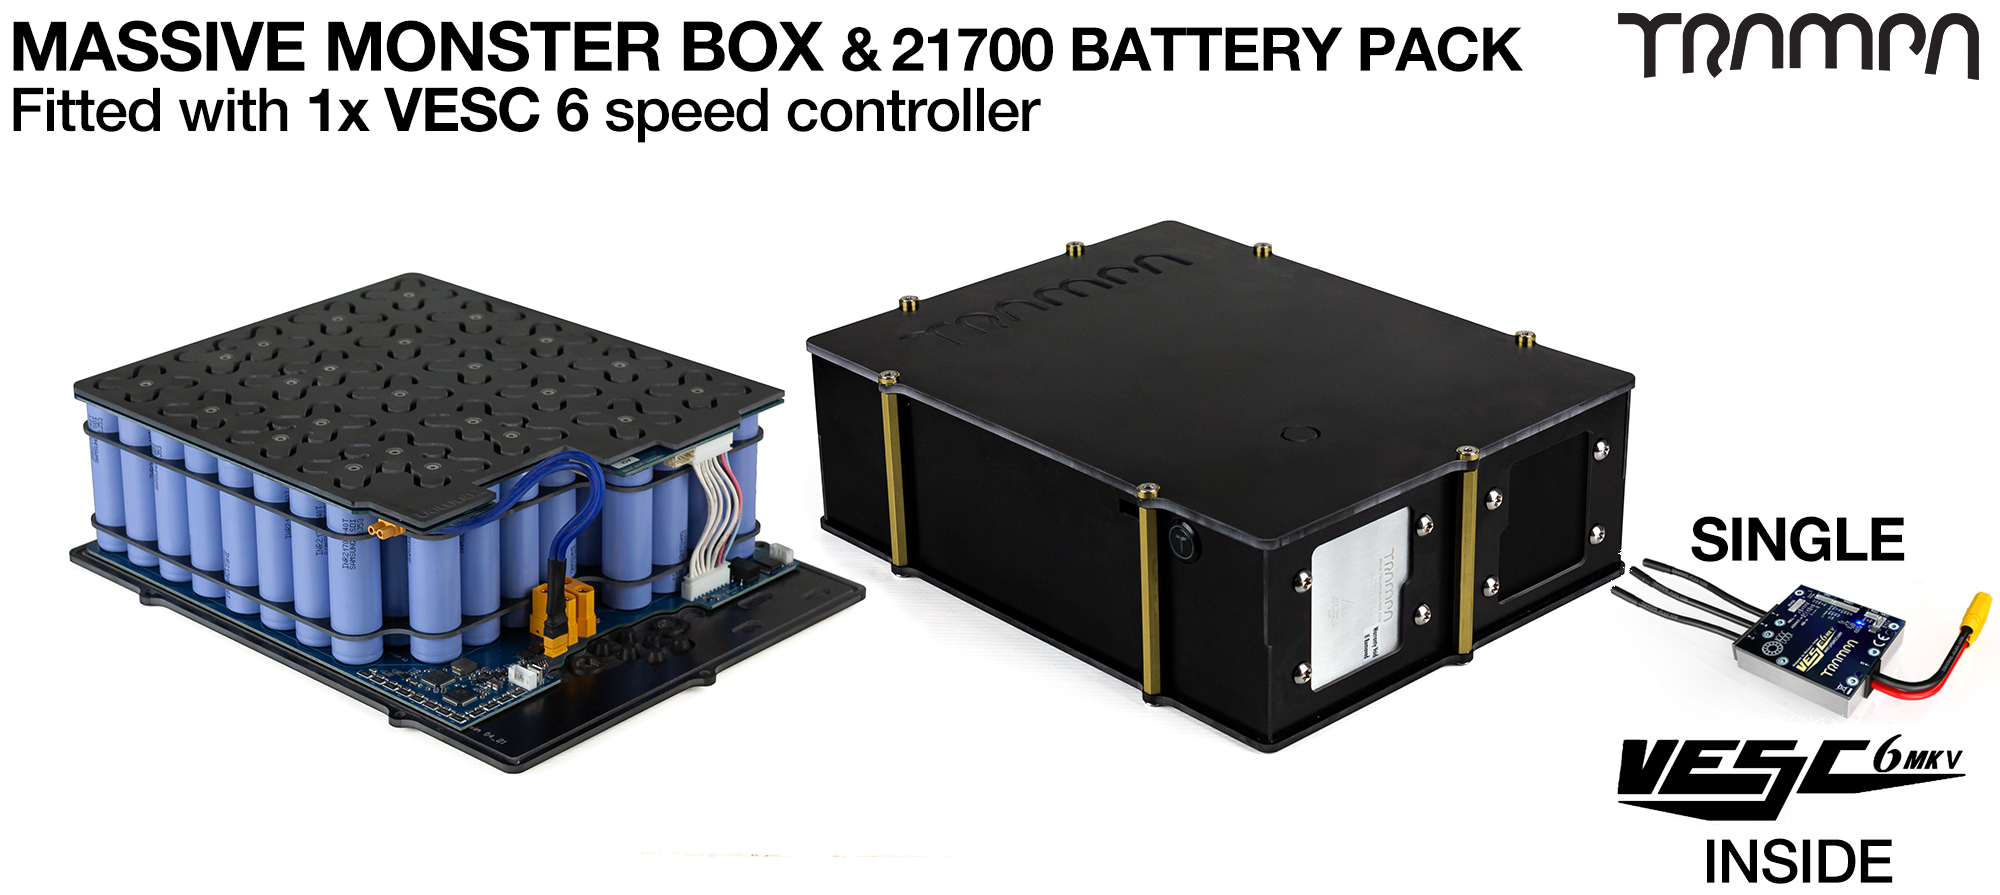 21700 2WD MASSIVE MONSTER Box with 21700 PCB Pack 1x VESC 6 & 84x 21700 cells 12s7p - Specifically made to work in conjunction with TRAMPA's Electric Decks but can be adapted to fit anything - UK Customers only